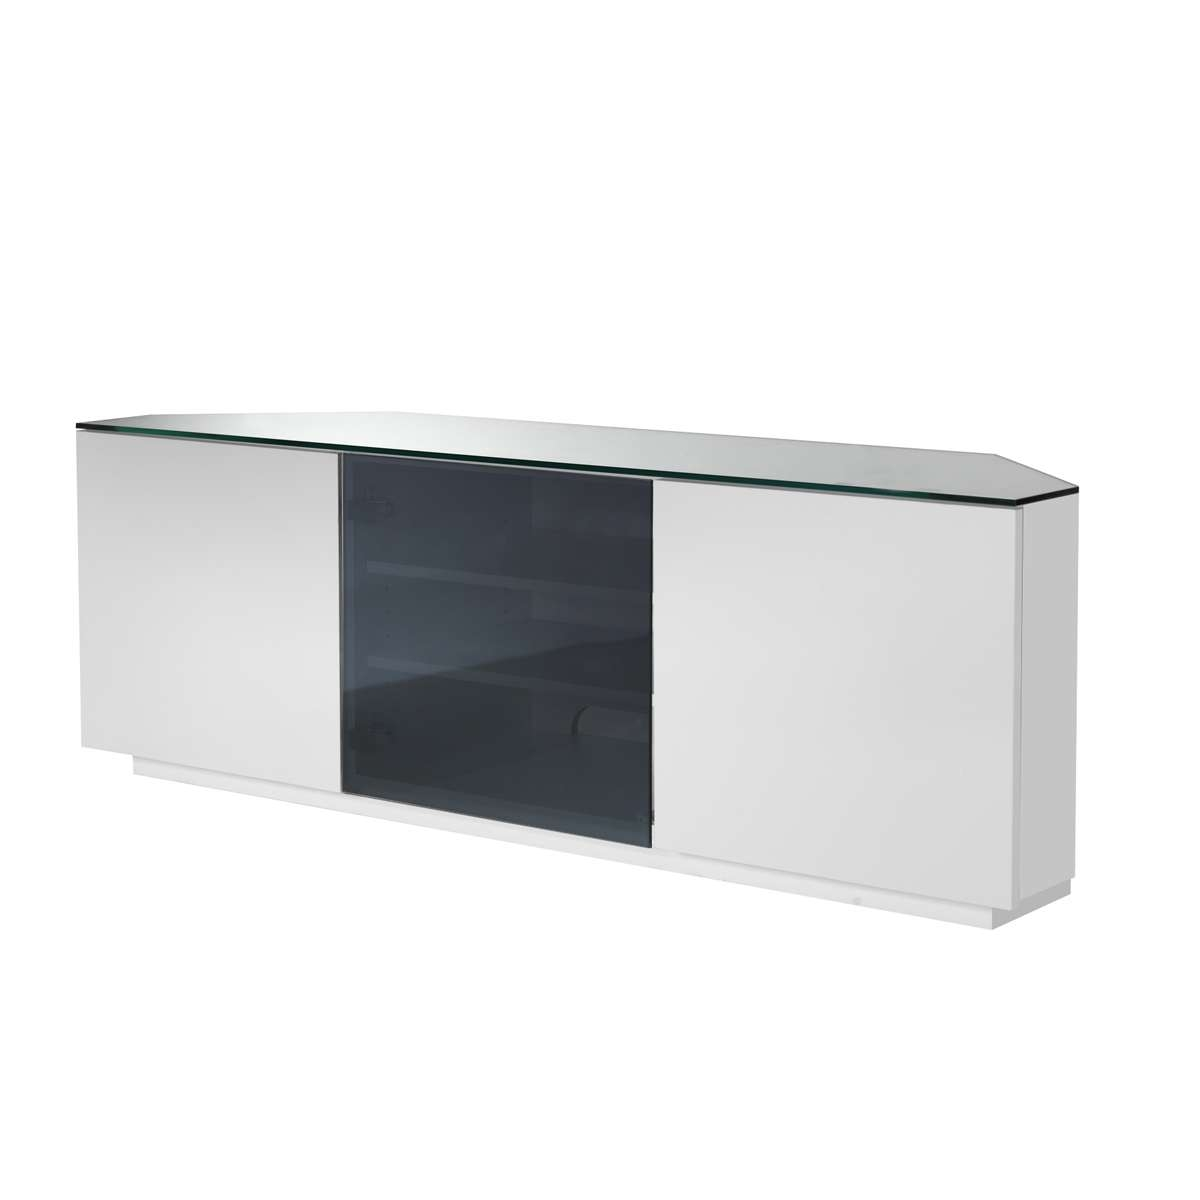 Ukcf Milan White Gloss & Black Glass Corner Tv Stand 150cm For Contemporary Corner Tv Stands (View 8 of 15)